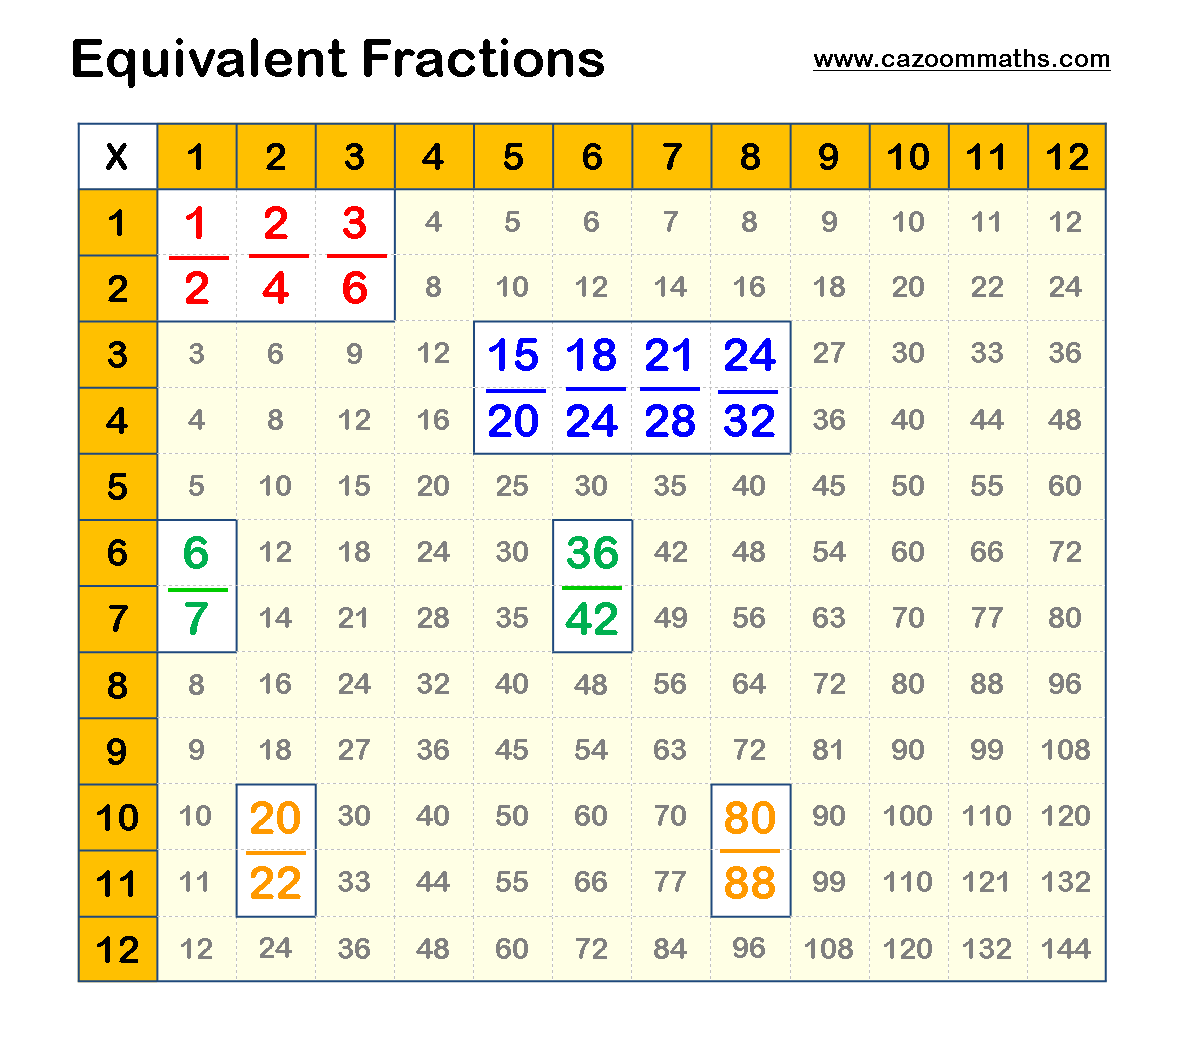 Nice little trick for equivalent fractions, has always been staring us in the face!